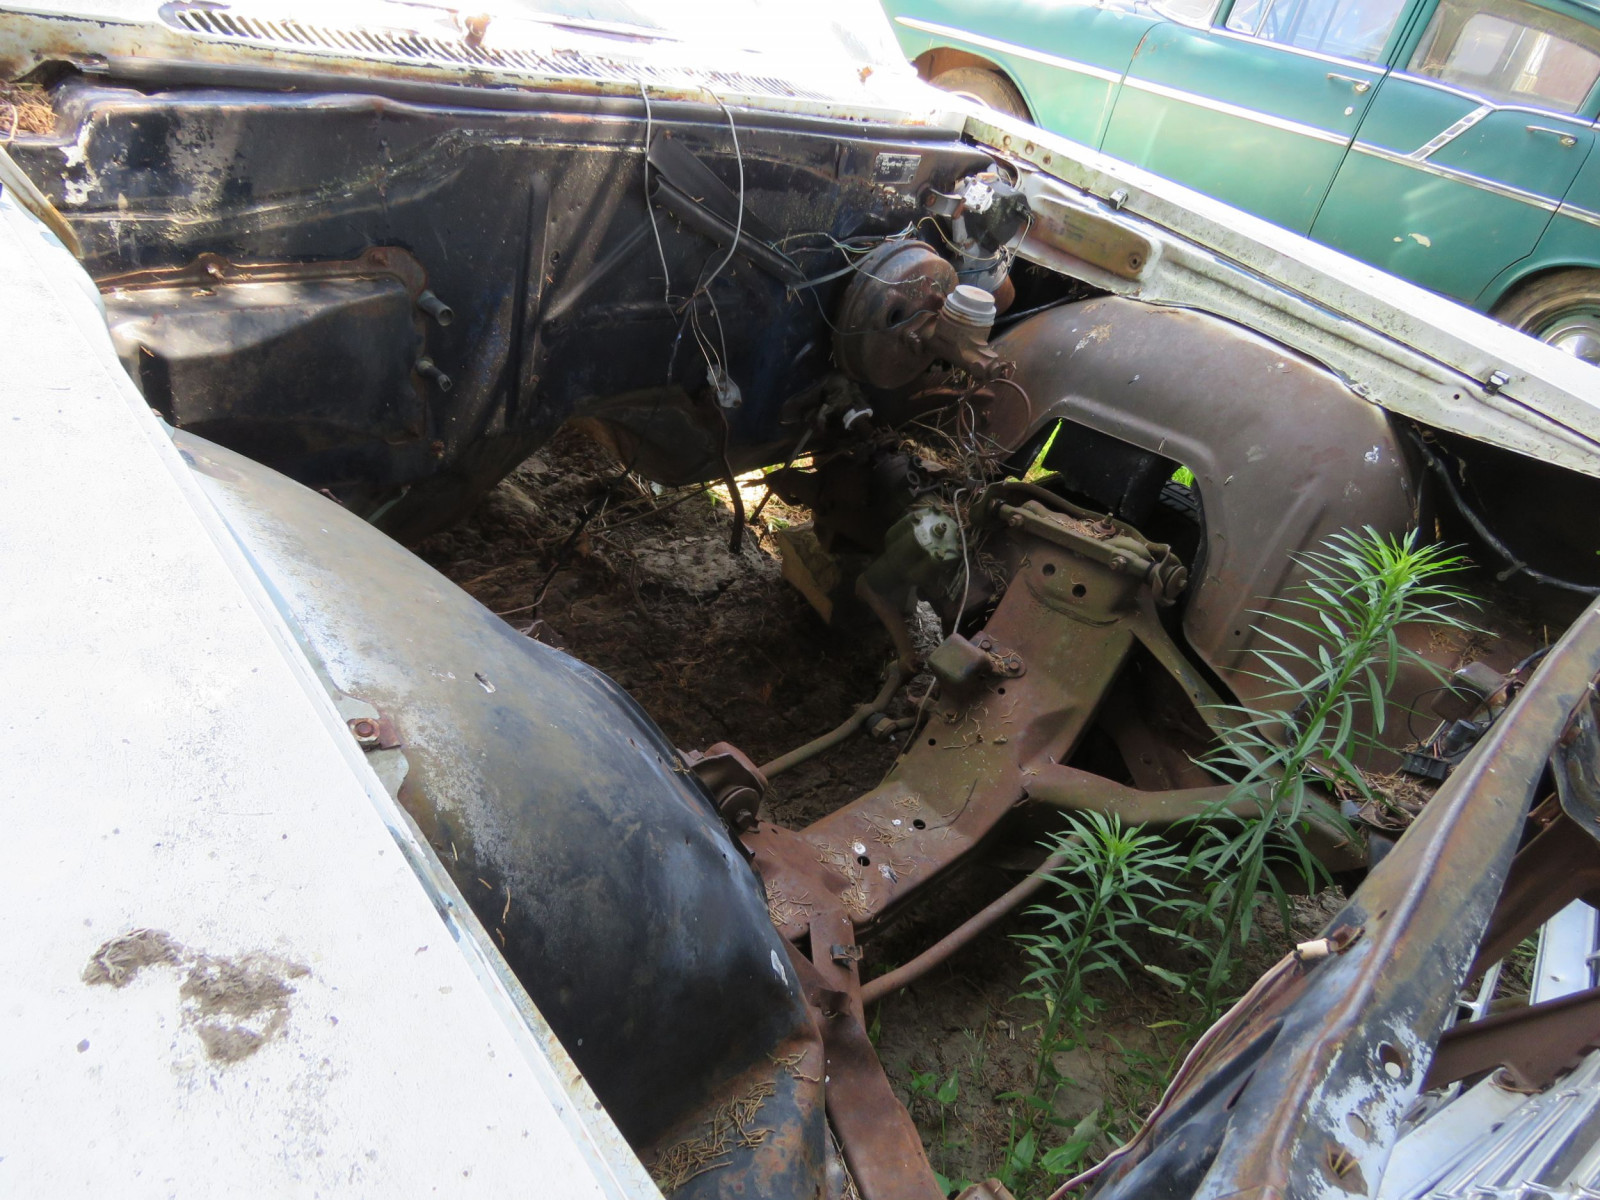 1965 Chevrolet Impala For Project or parts - Image 2